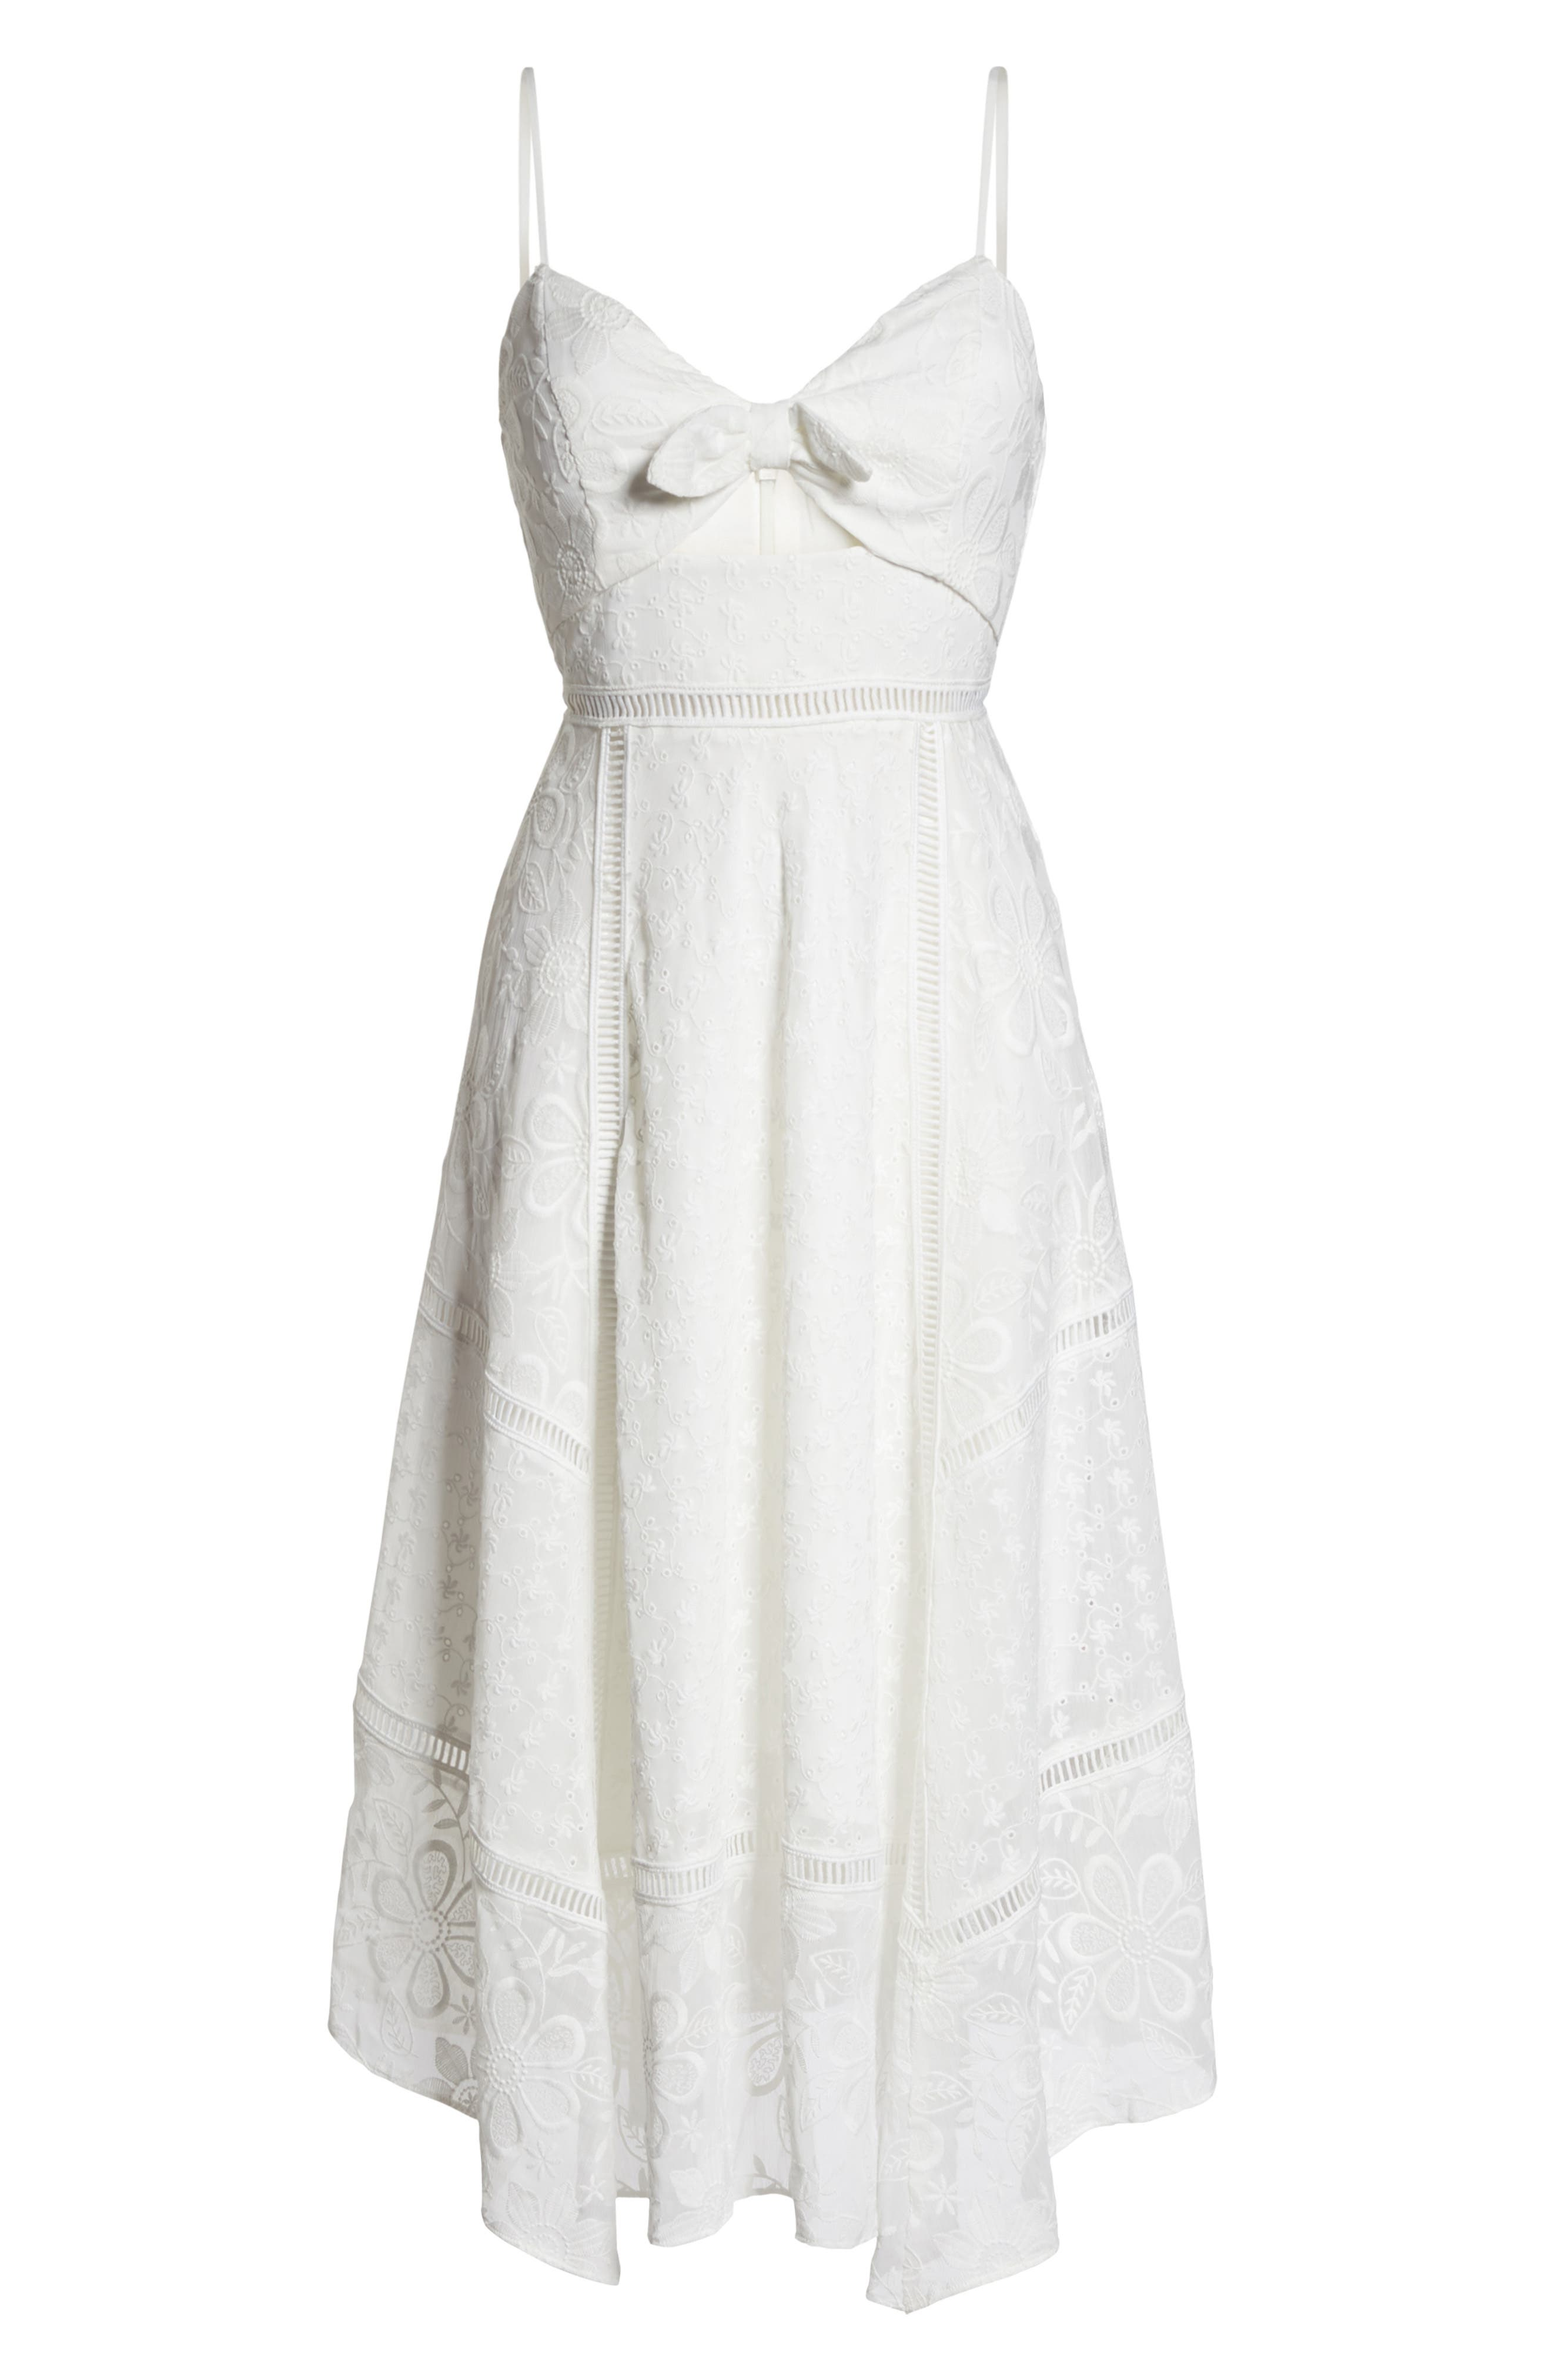 EVER NEW,                             Broderie Anglaise Knot Detail Dress,                             Alternate thumbnail 7, color,                             100